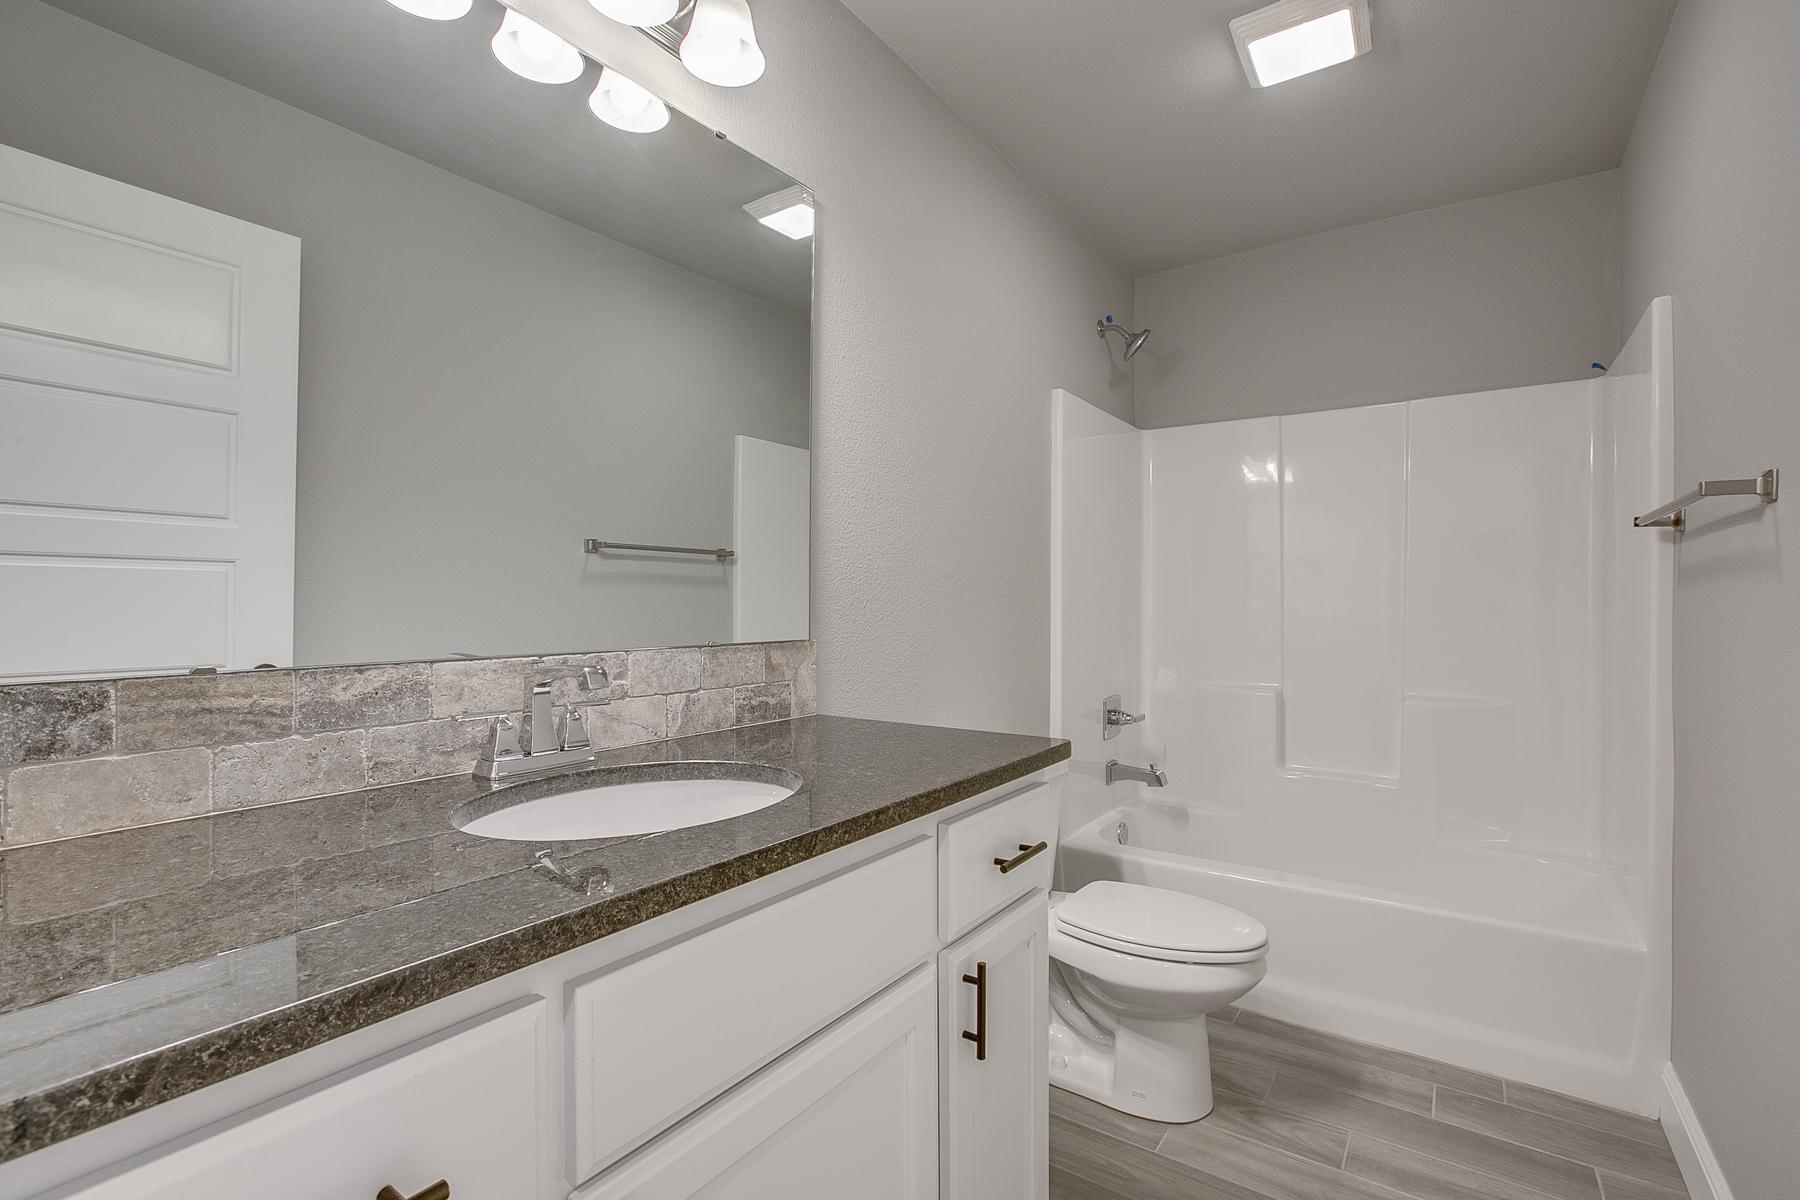 Bathroom featured in the 2500 Series By Schuber Mitchell Homes in Fayetteville, AR